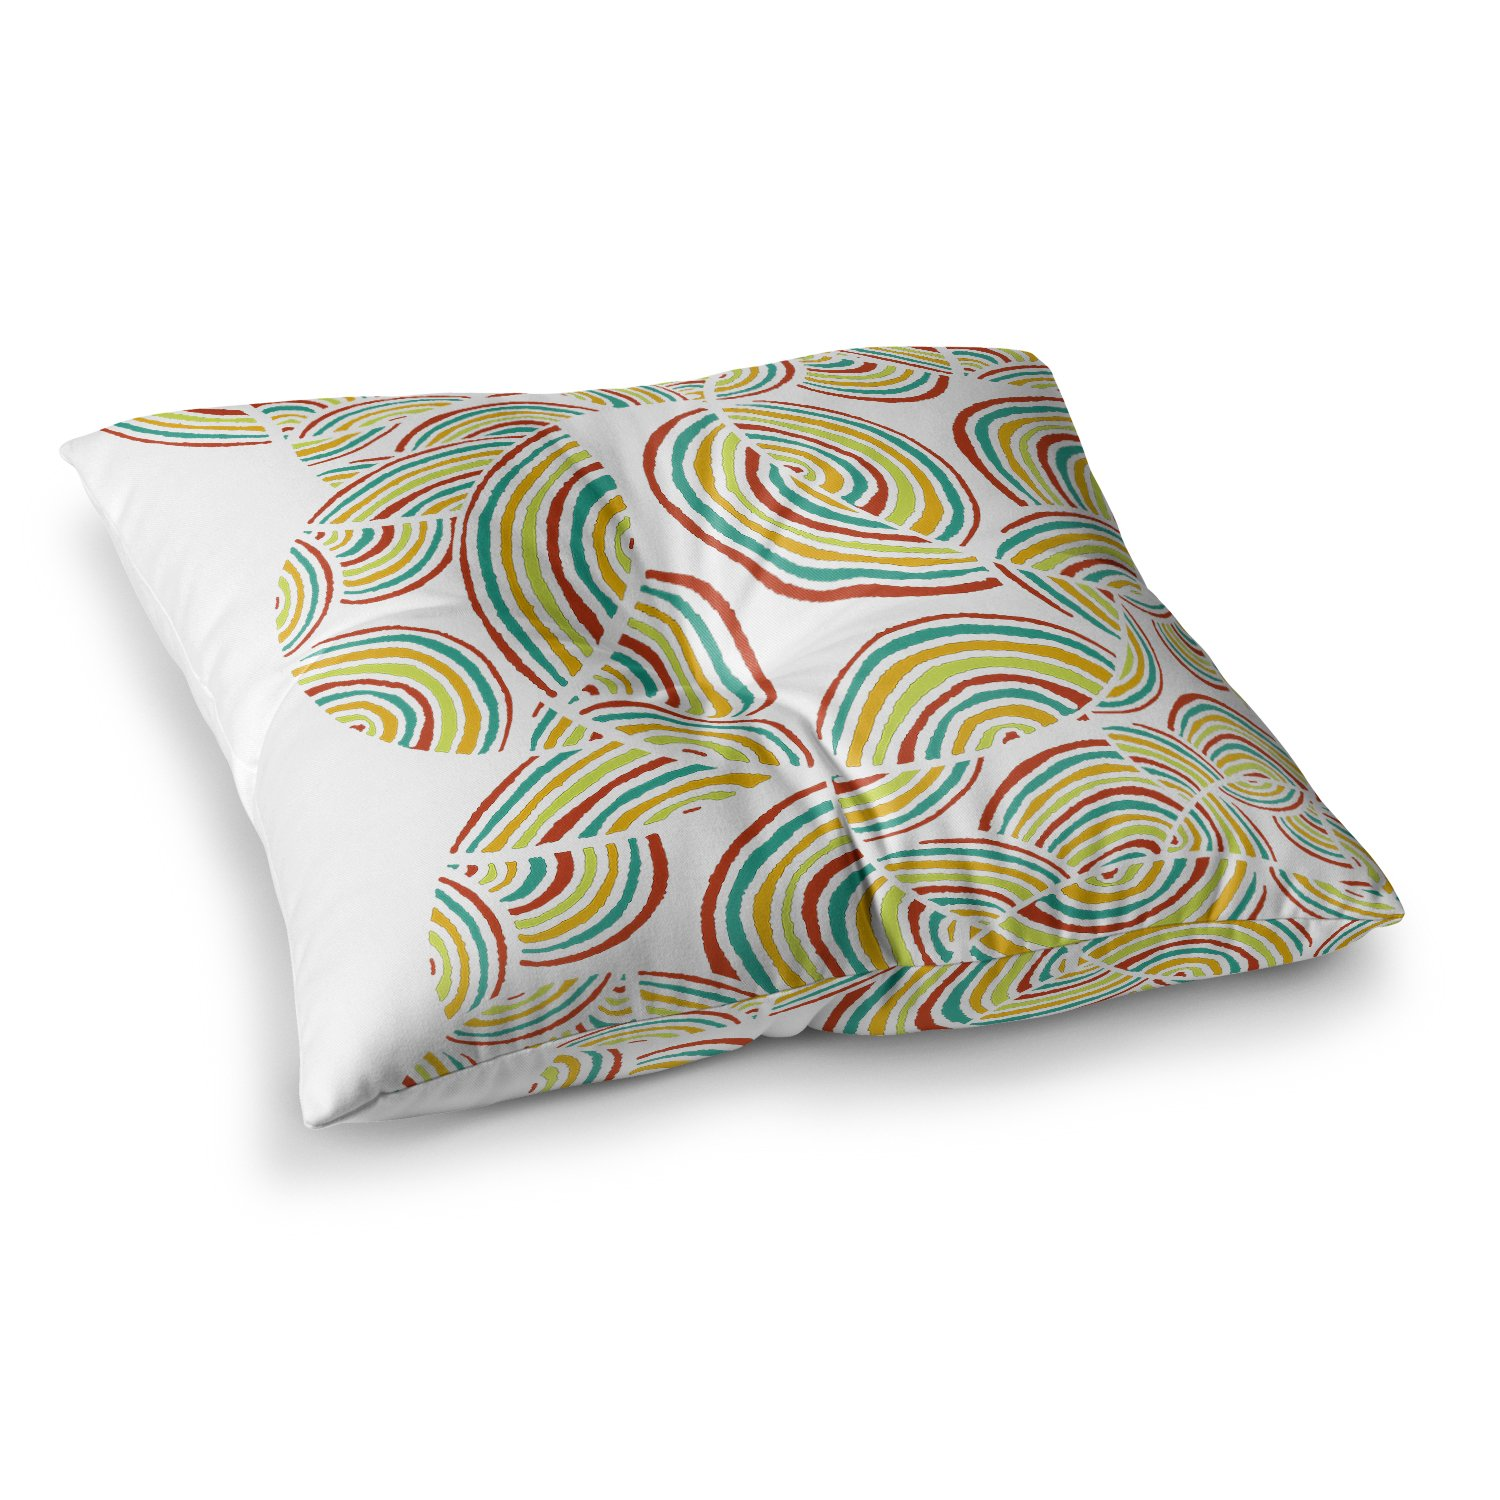 23 x 23 Square Floor Pillow Kess InHouse Pom Graphic Design Rainbow Sky